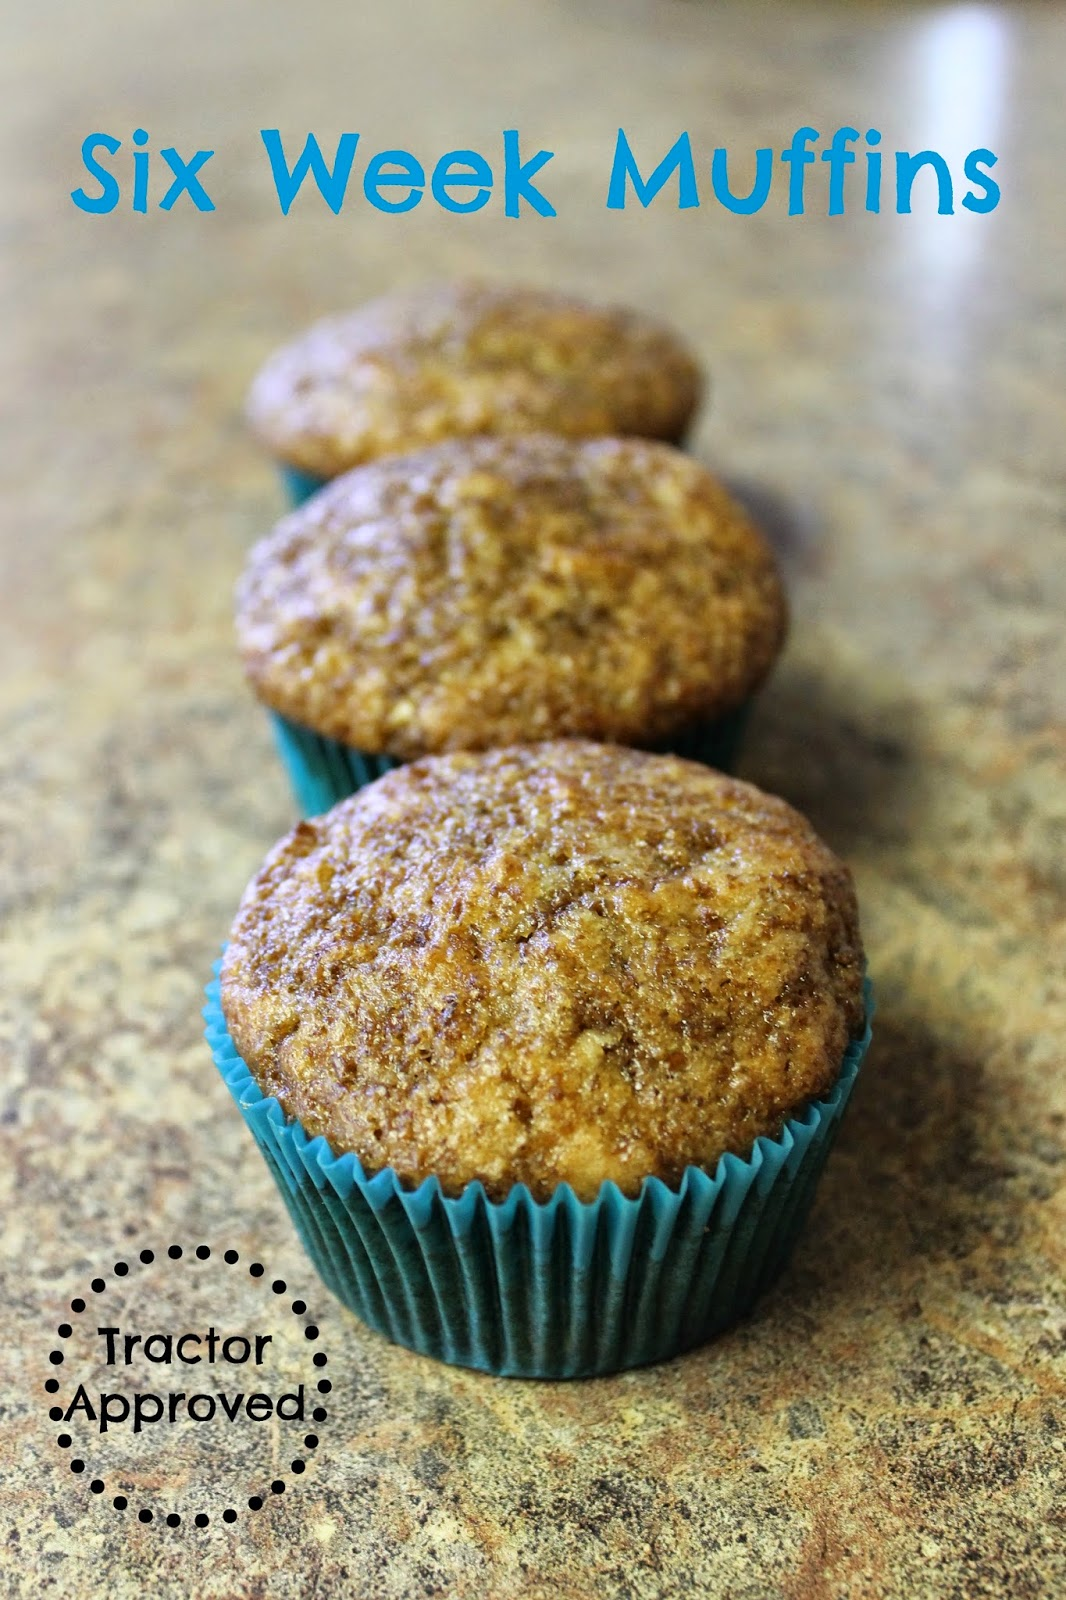 Six Week Muffins - fresh muffins for up to six weeks